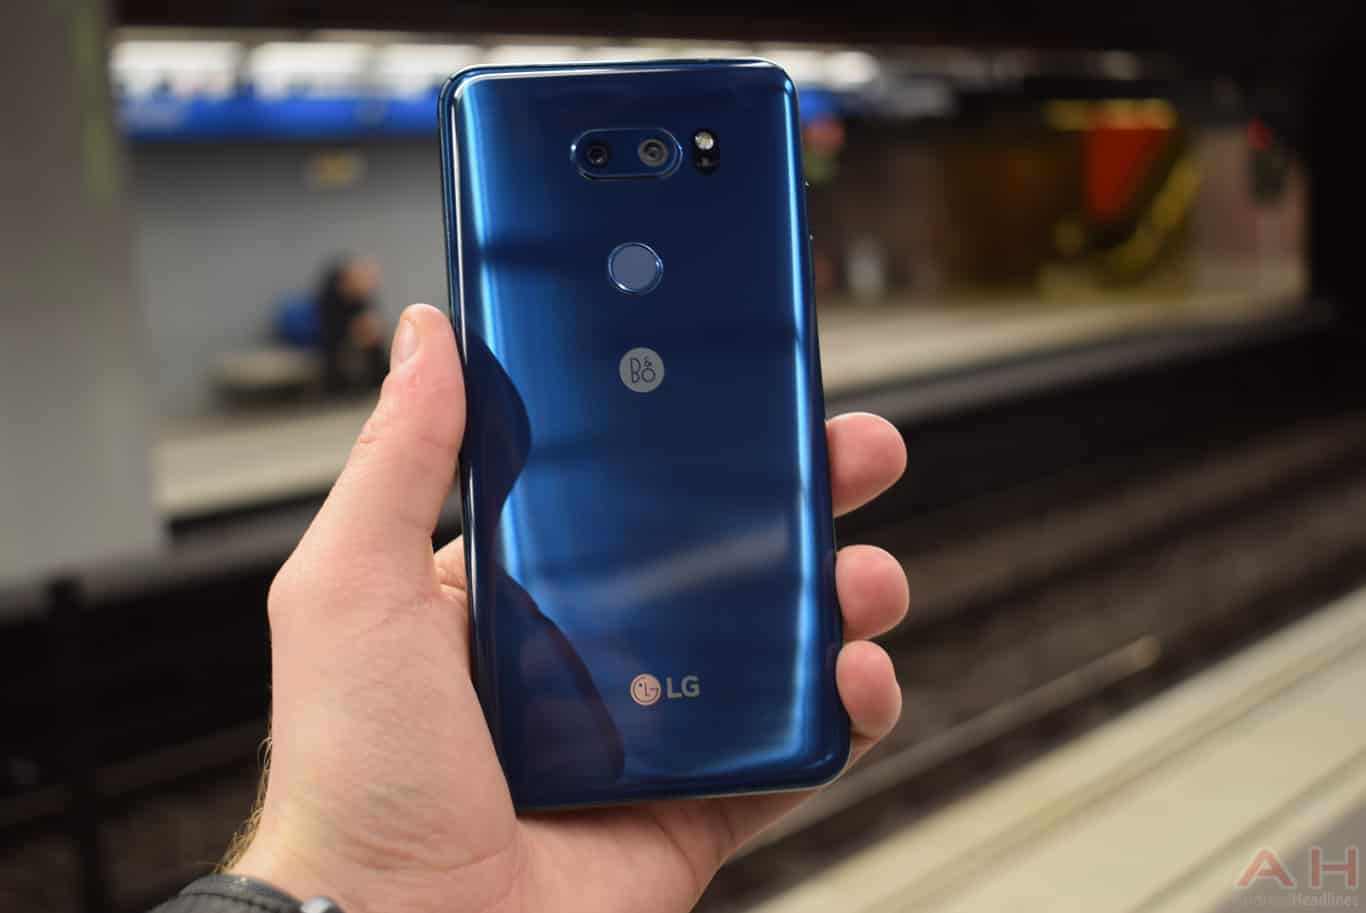 LG V30S ThinQ MWC 18 AM AH 15